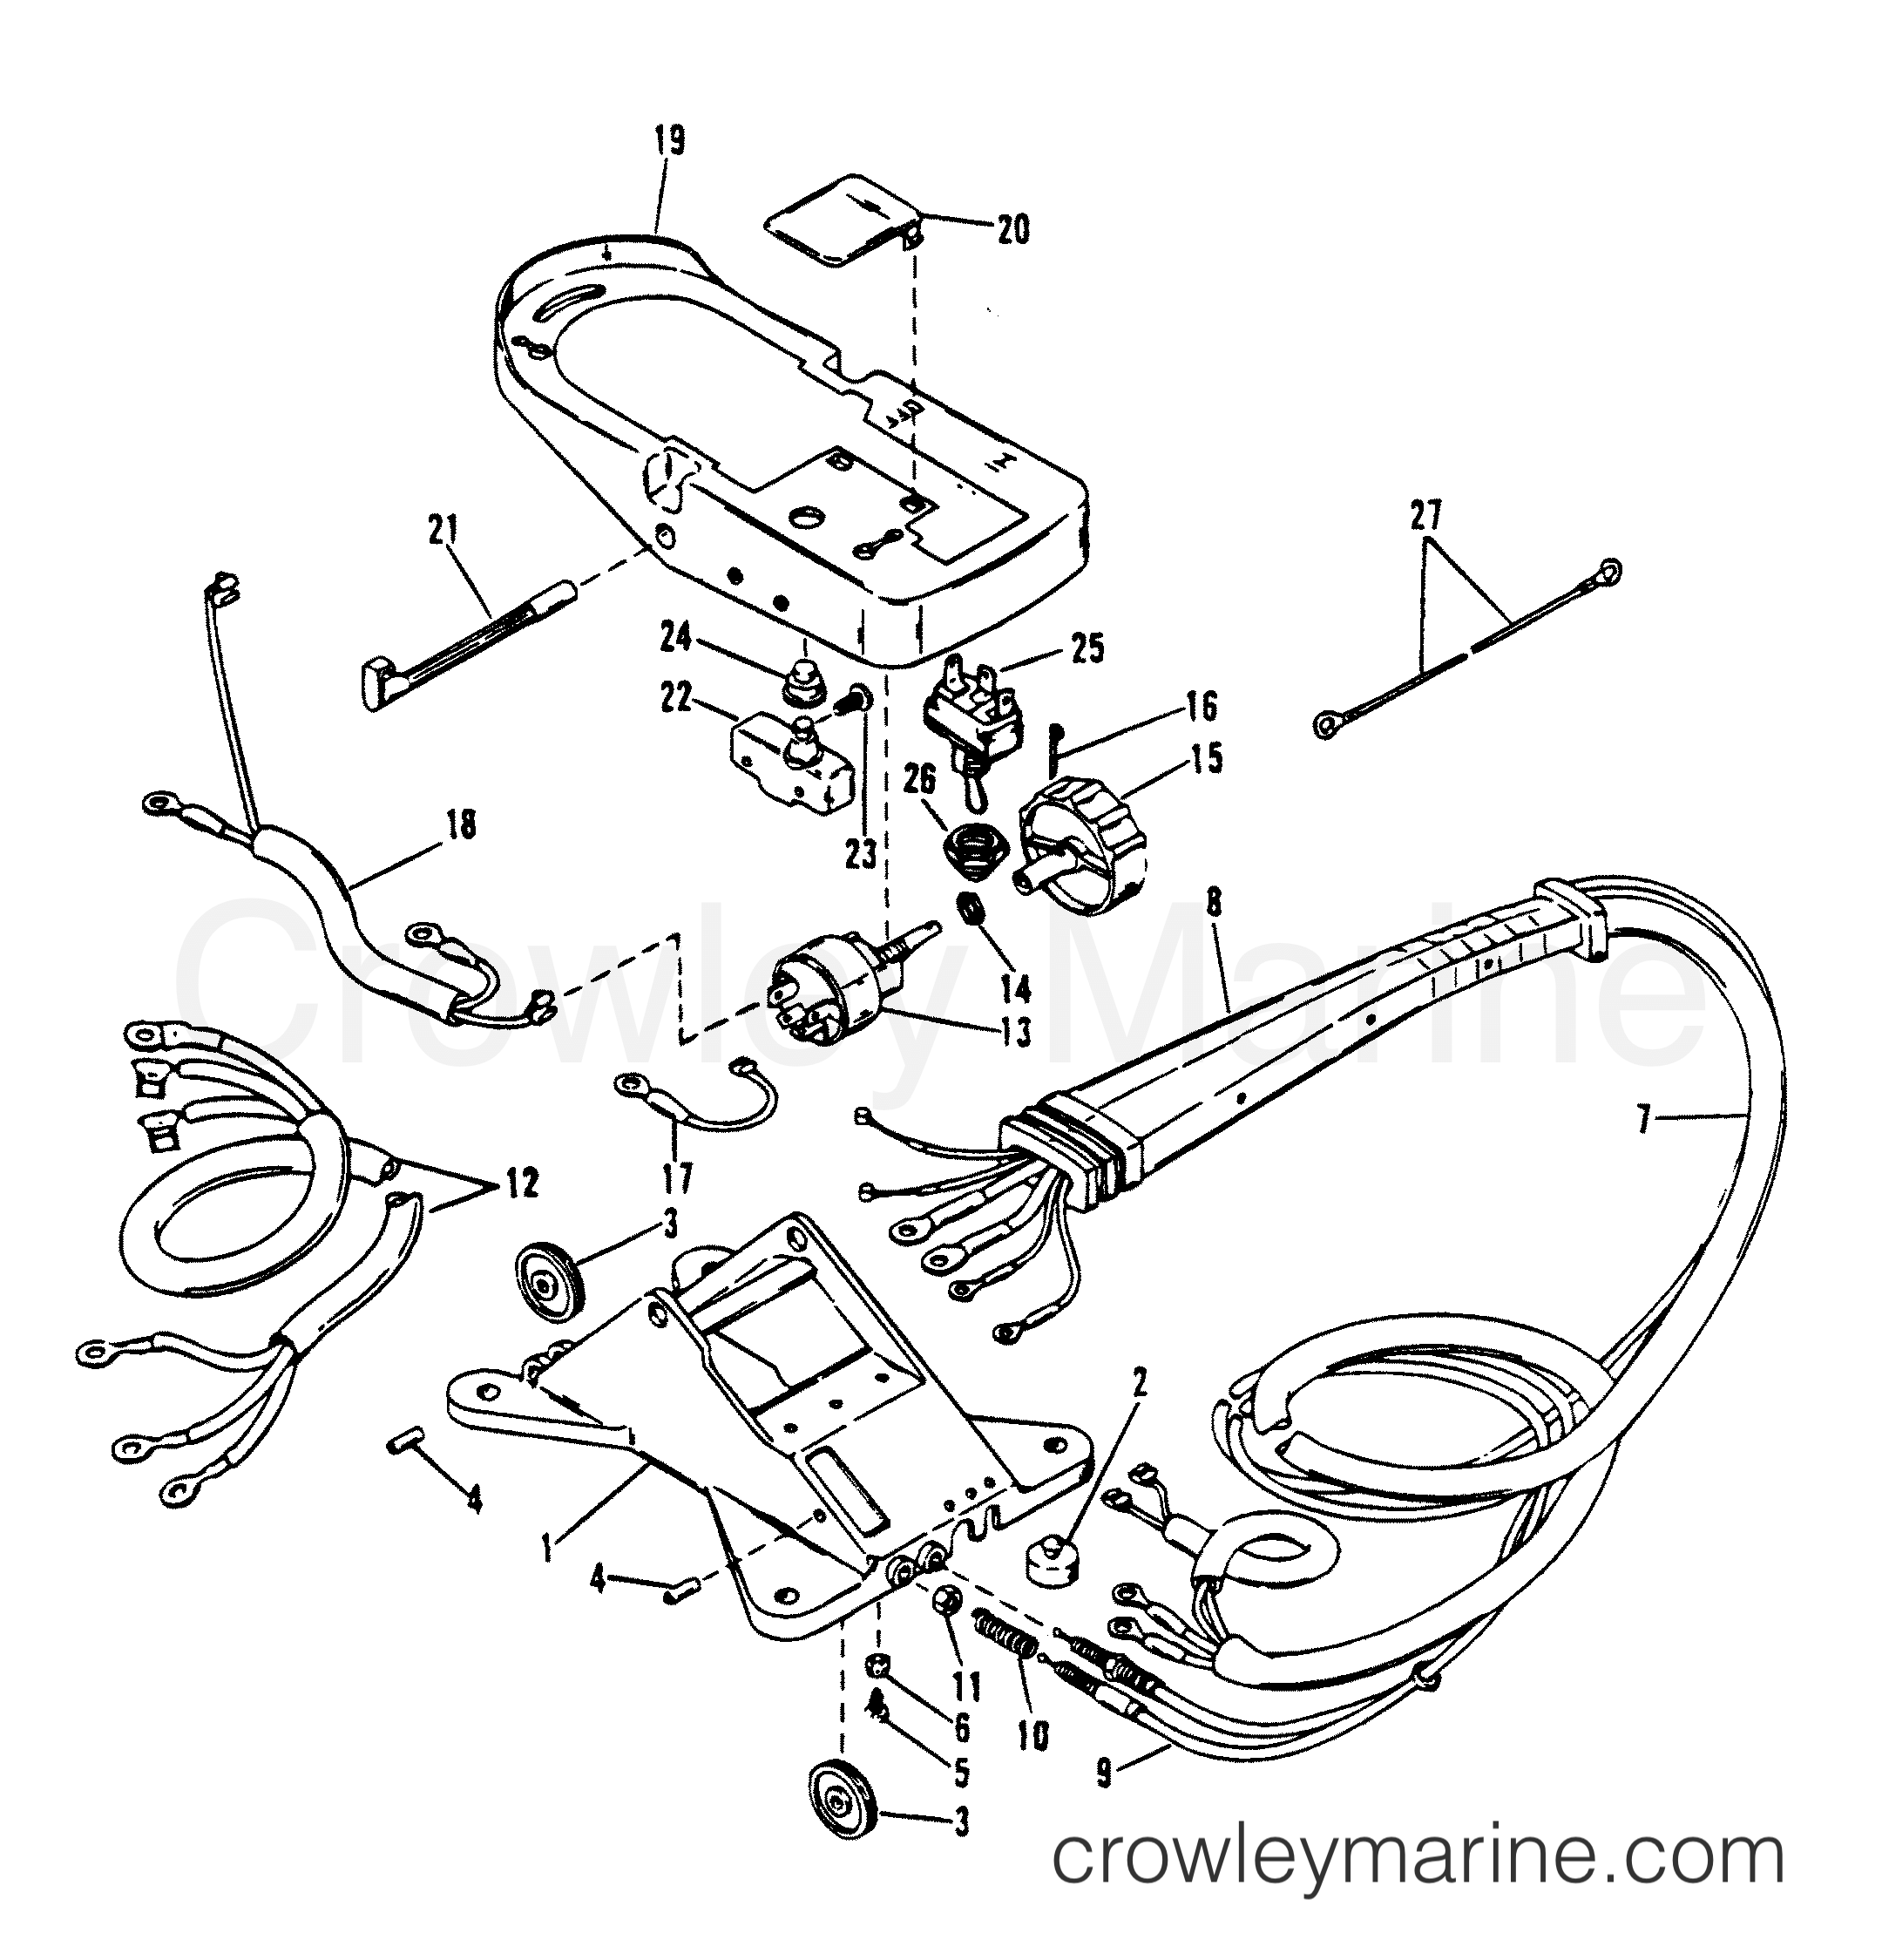 wiring harness and foot plate   u0026quot rc u0026quot